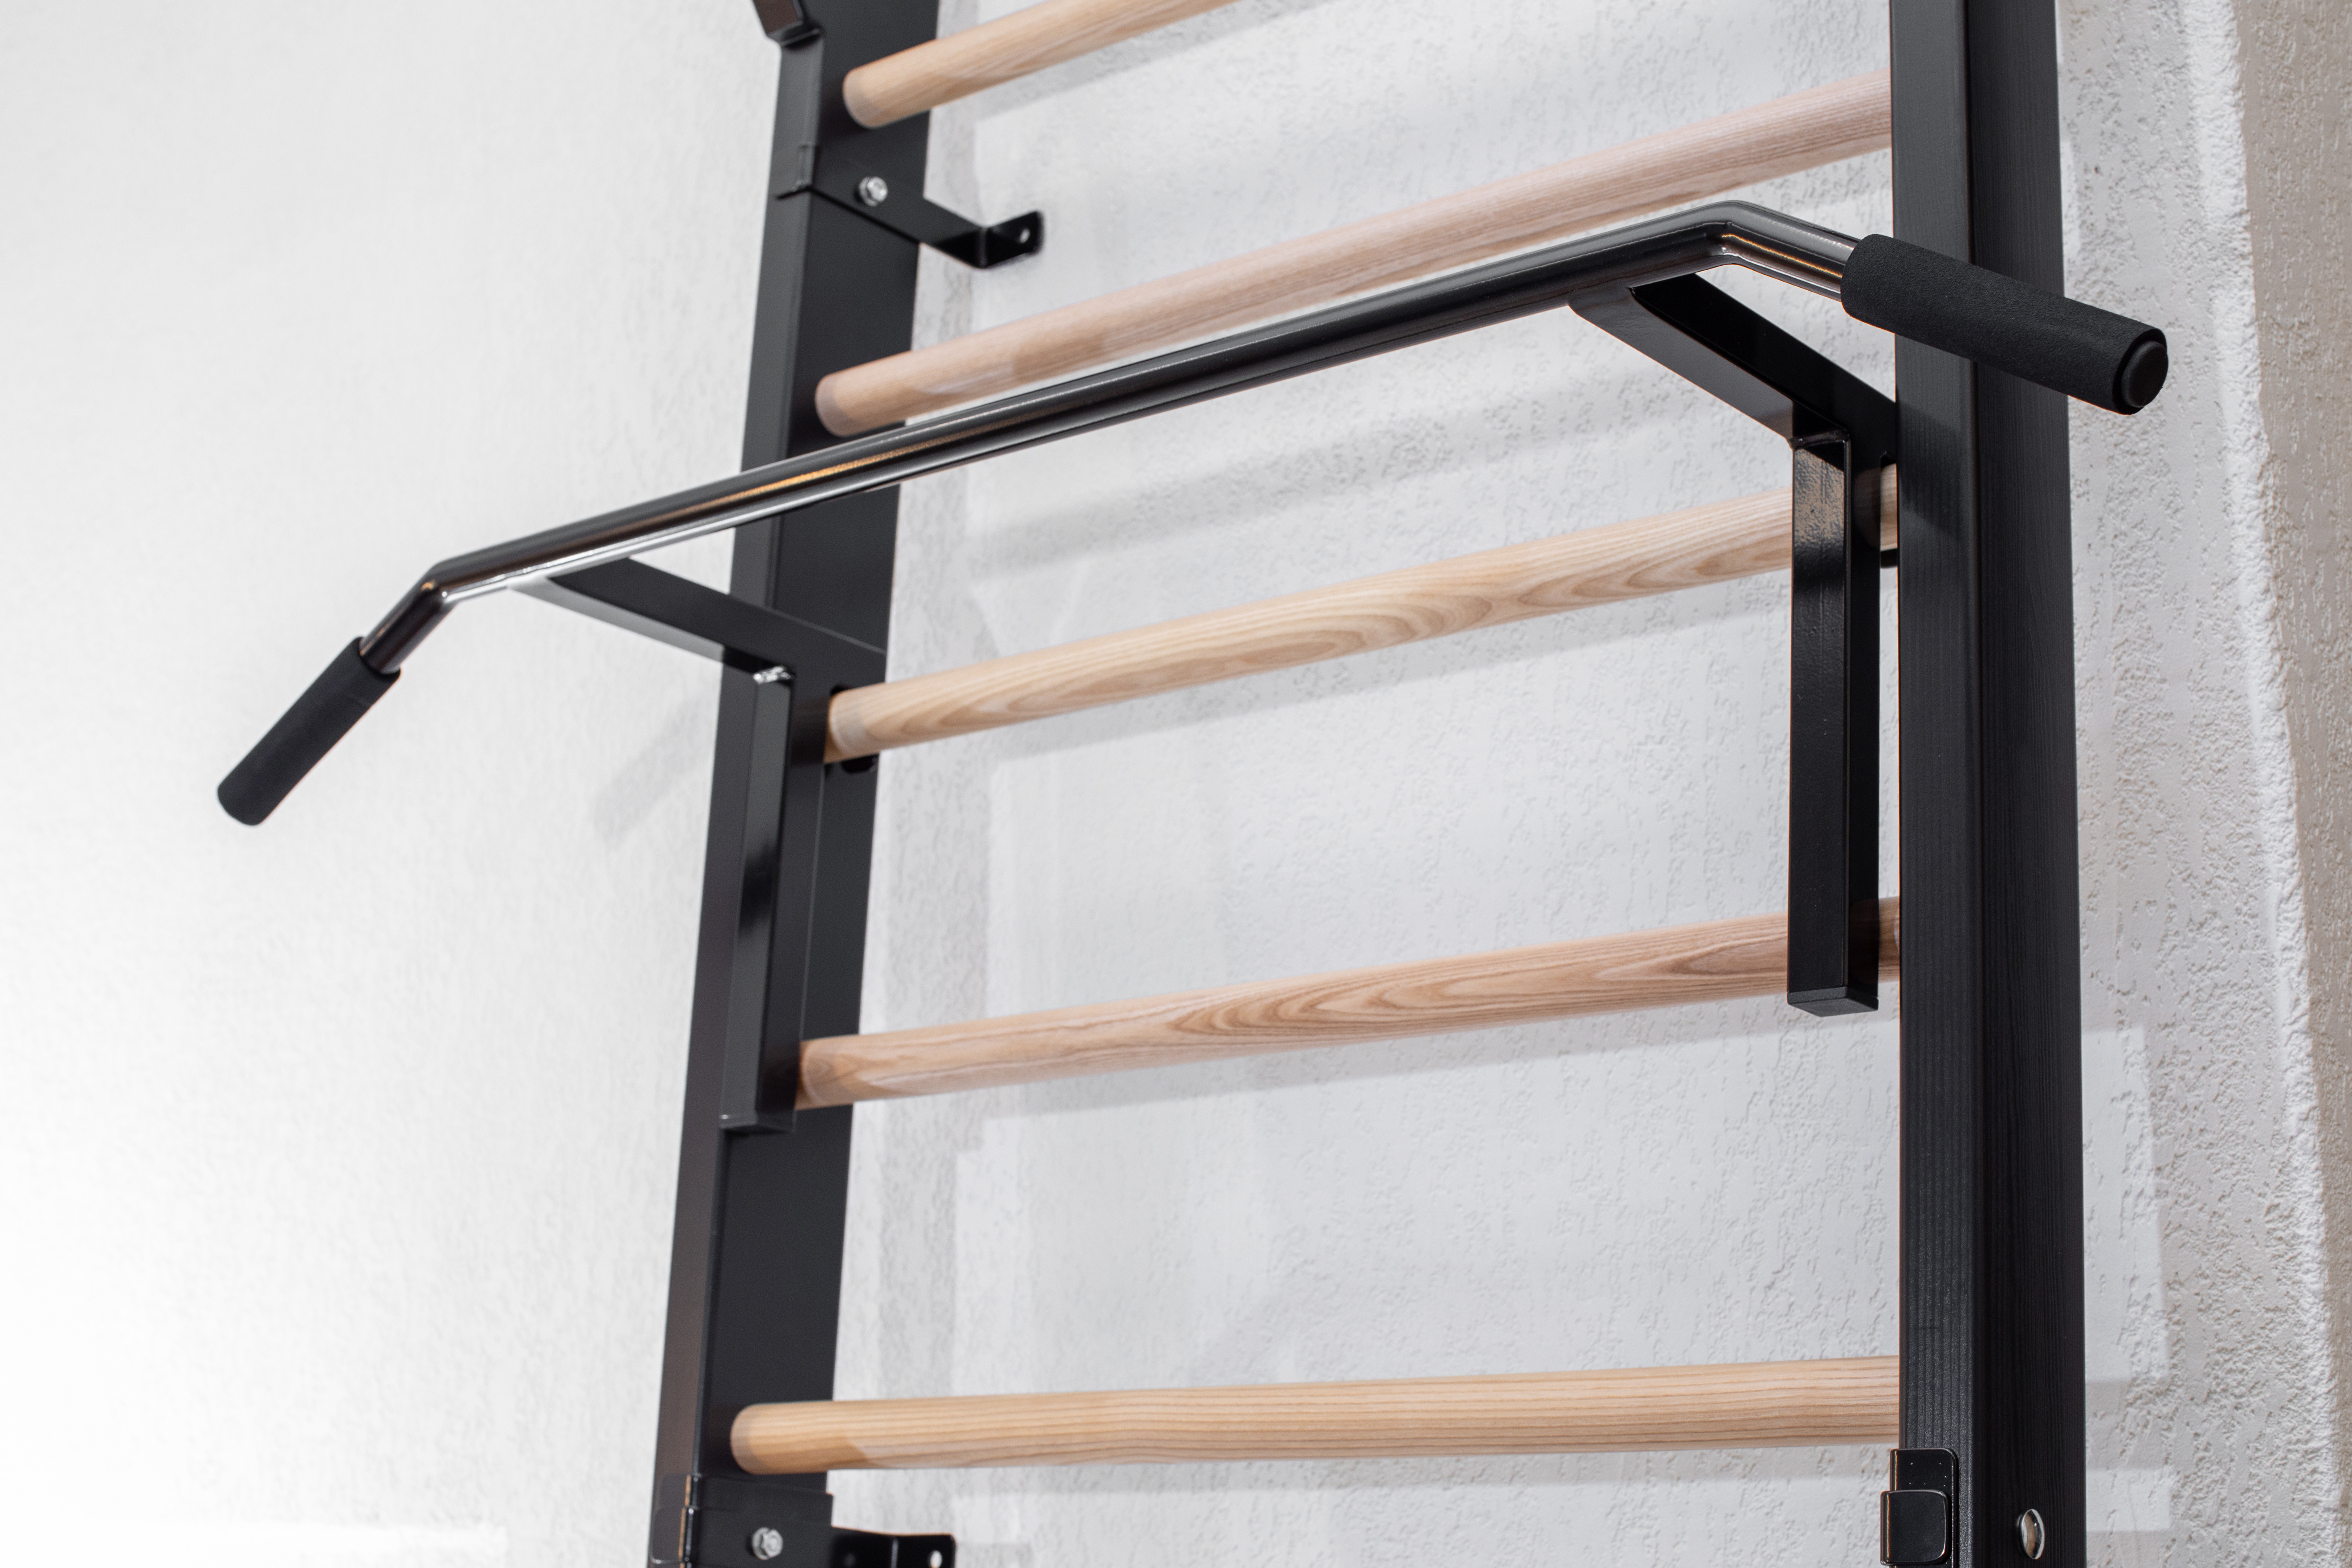 Pull Up Bars Pull Up Chin Up Bar Wall Bar Mounted Sport And Fitness Equipment Sego Ltd